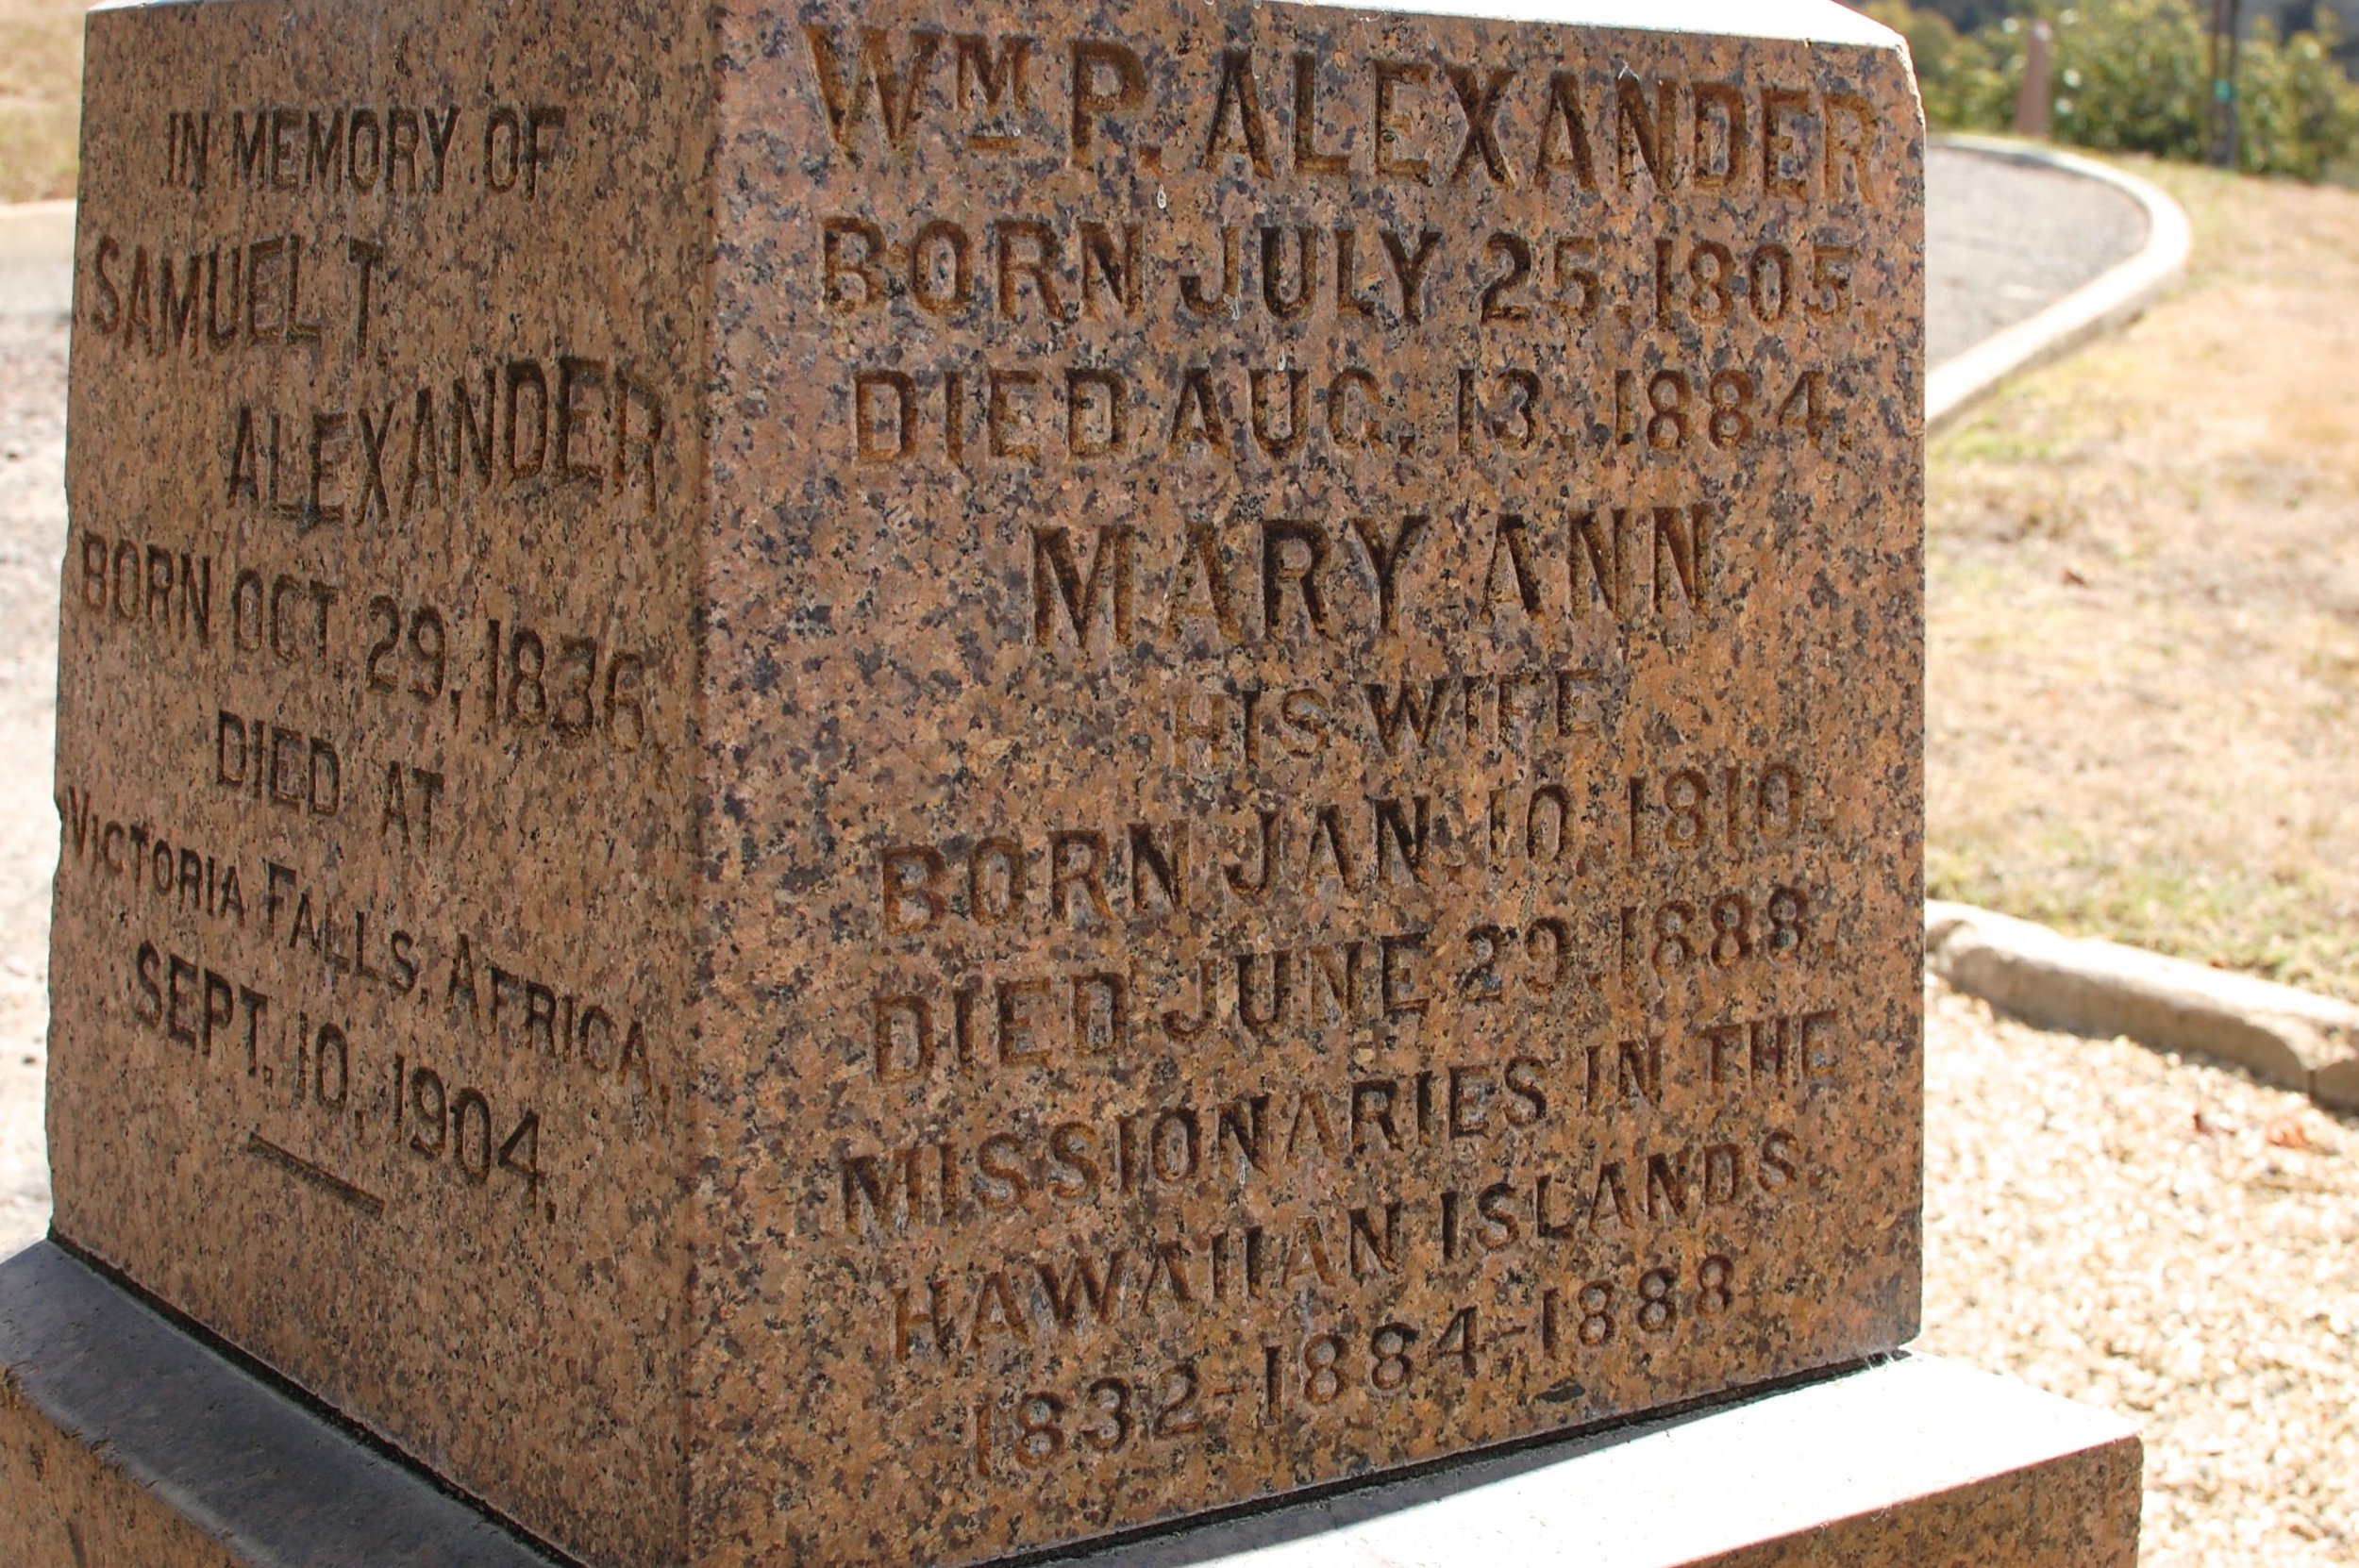 William Patterson Alexander is buried at Mountain View Cemetery, Oakland, California.